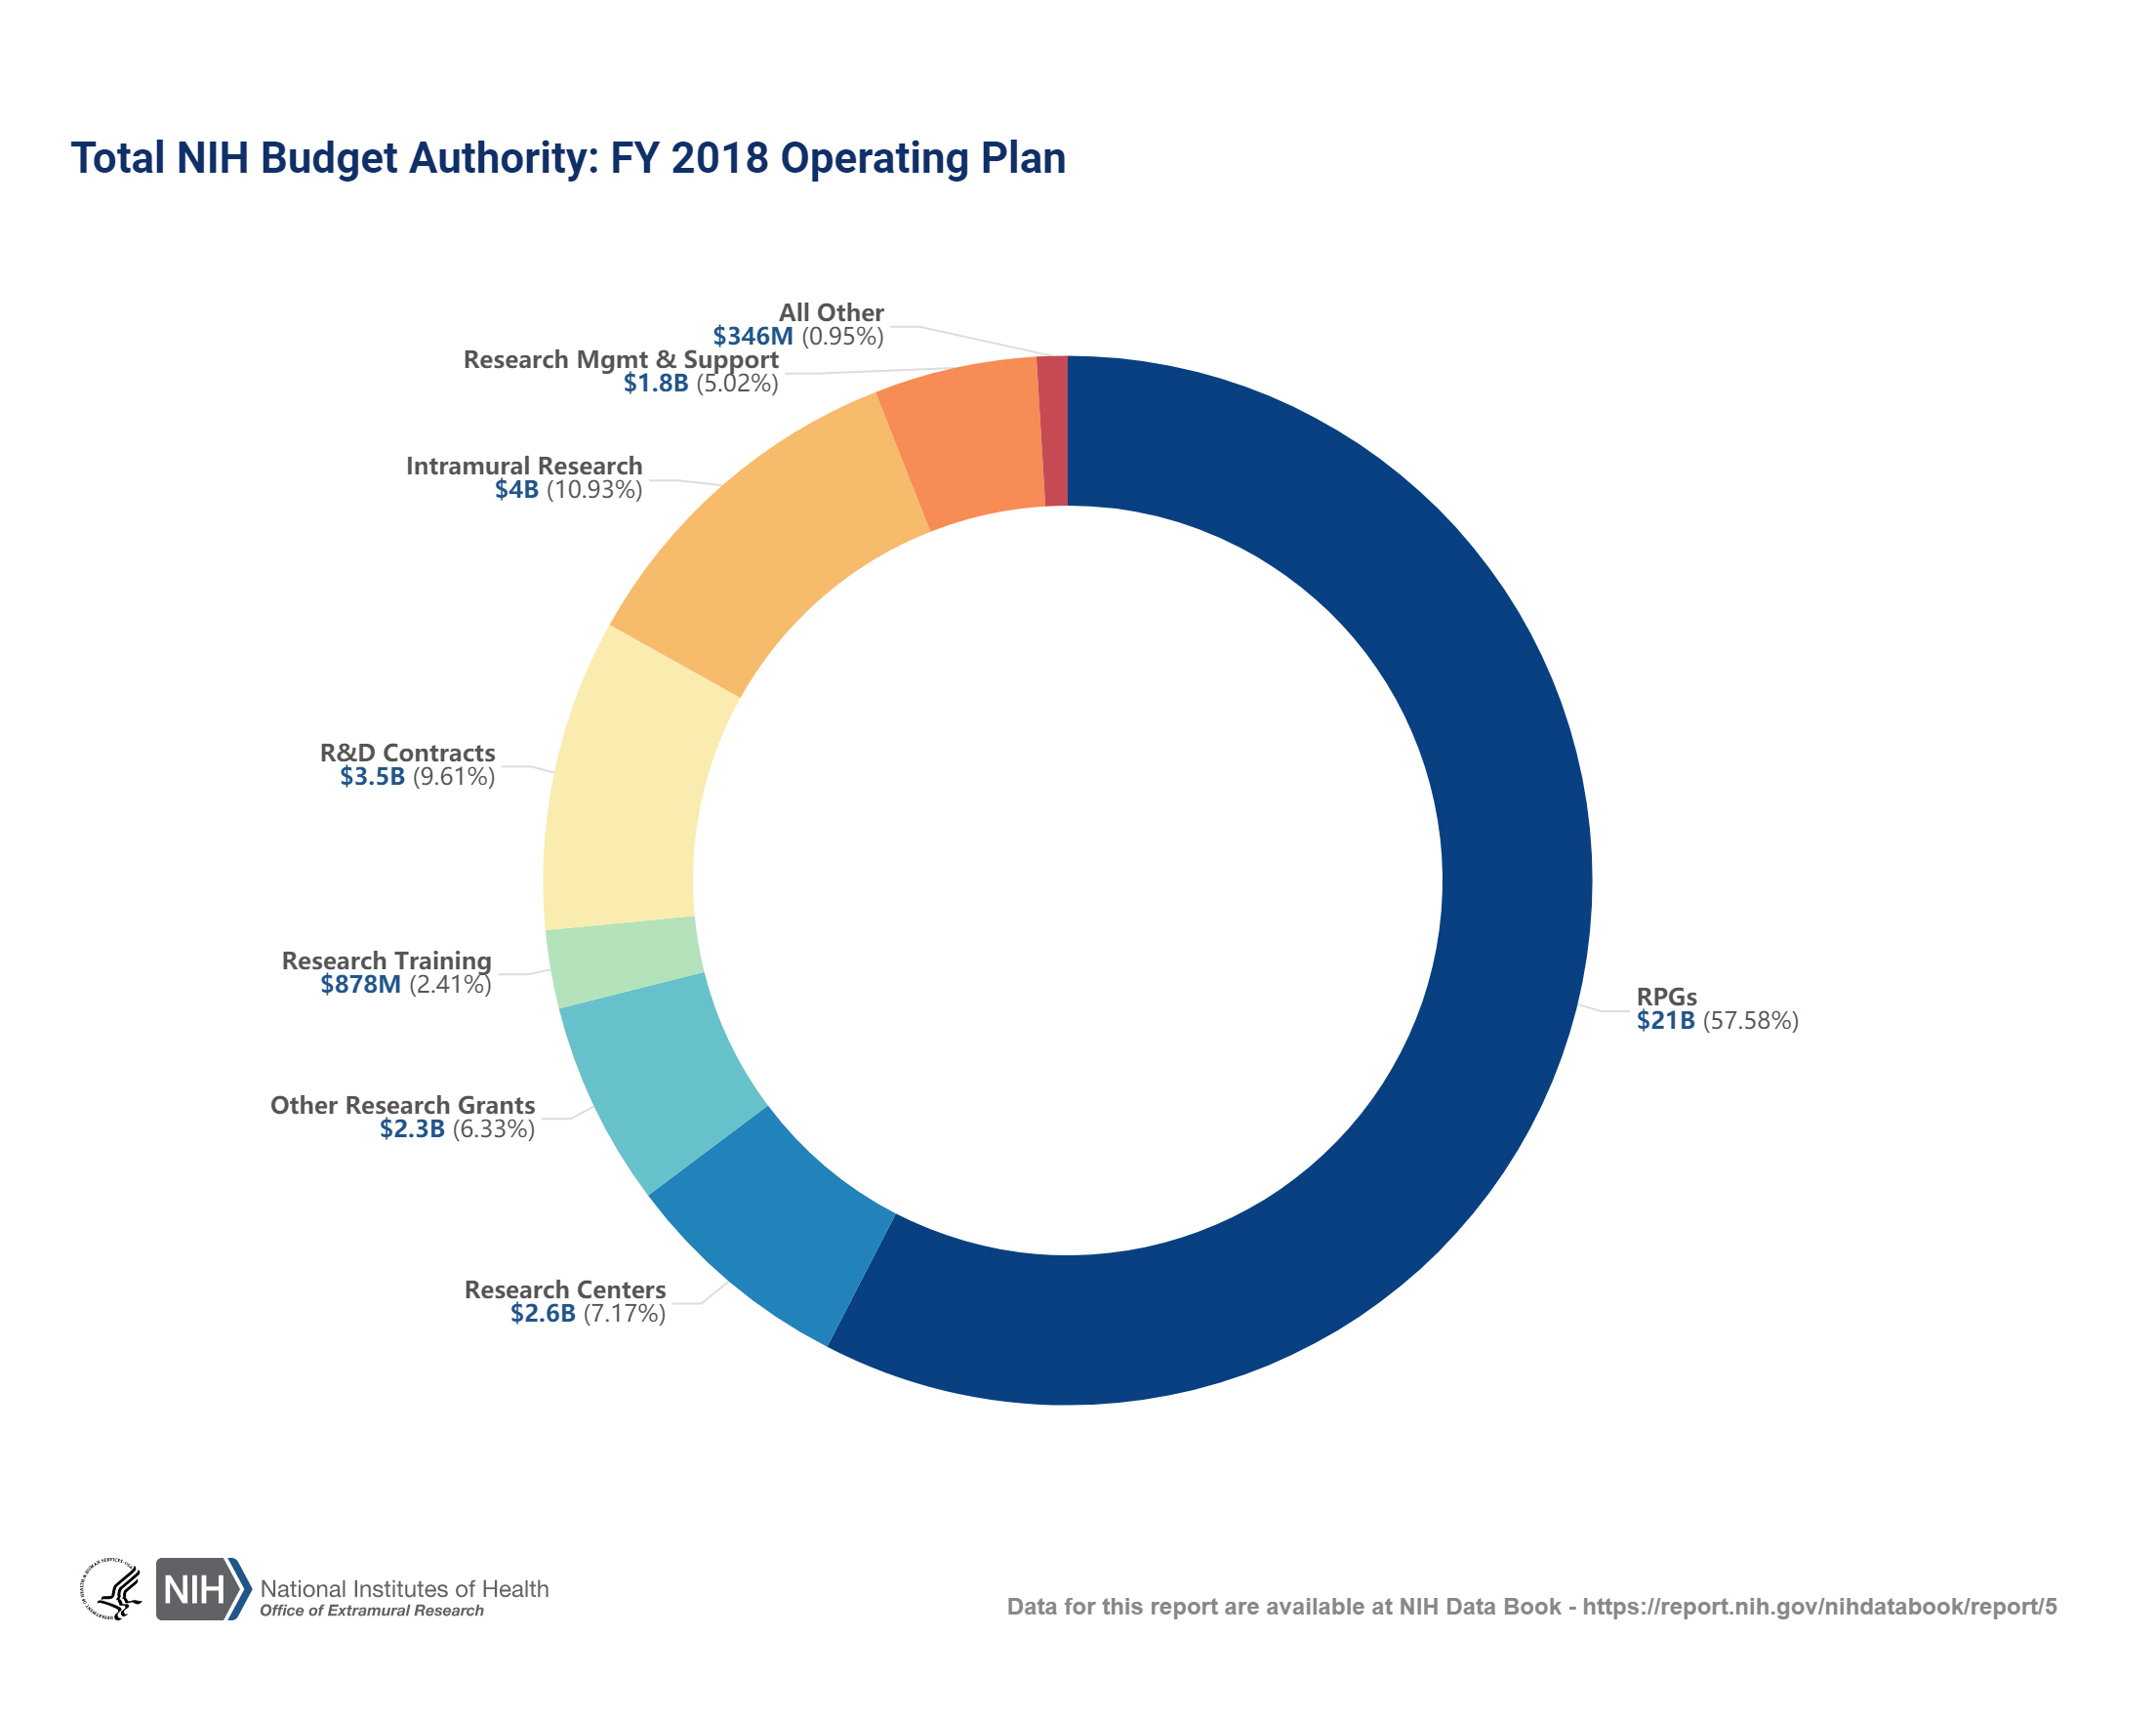 funding mechanisms, intramural research, and staff/operating expenses